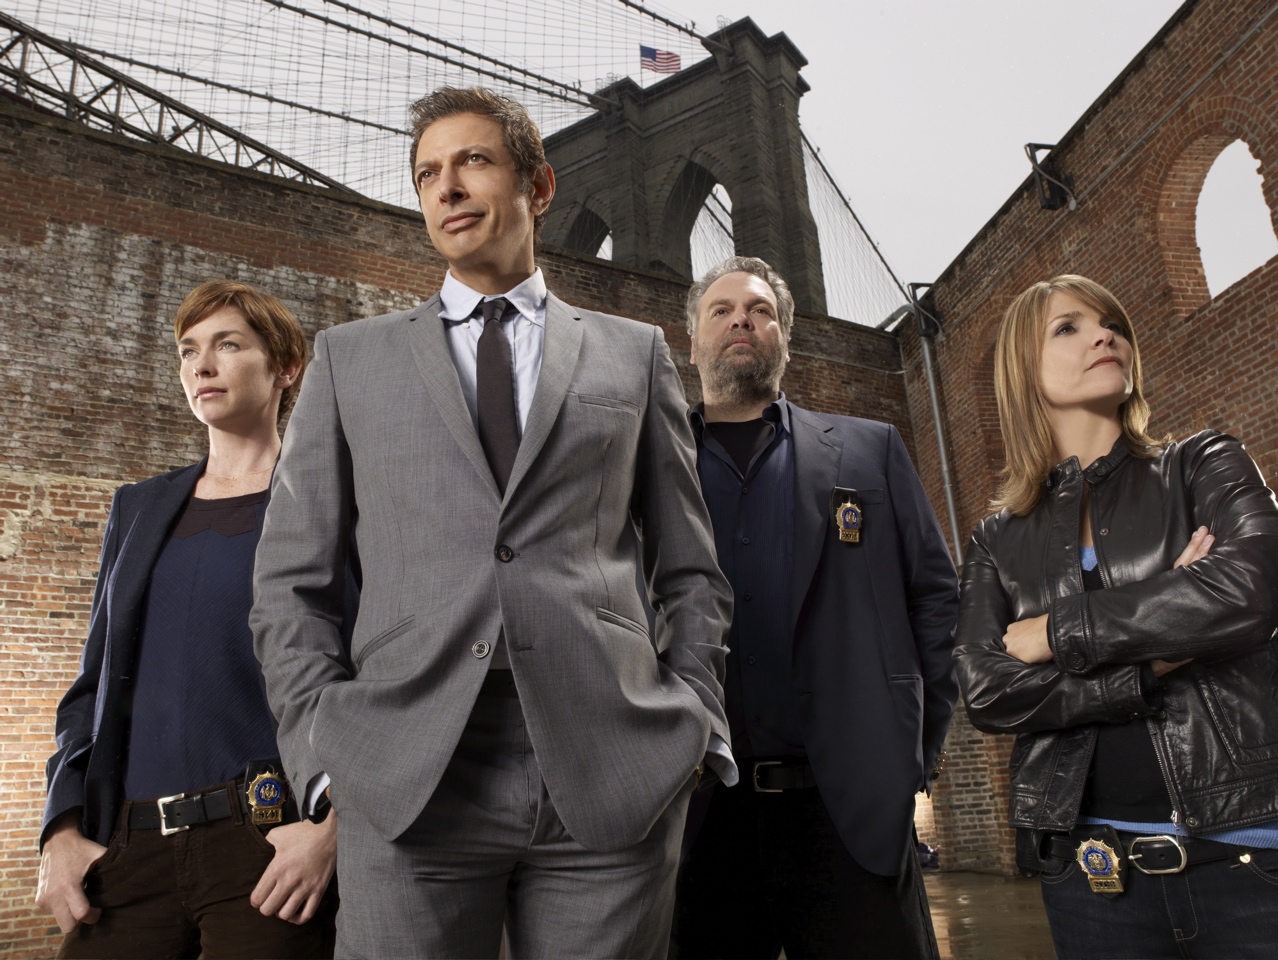 http://2.bp.blogspot.com/-TLKUH7ovhtk/TeUQ7UslmhI/AAAAAAAAgiY/UQG9K-F4O3o/s1600/law-order-criminal-intent-cast-photo-series-8.jpg